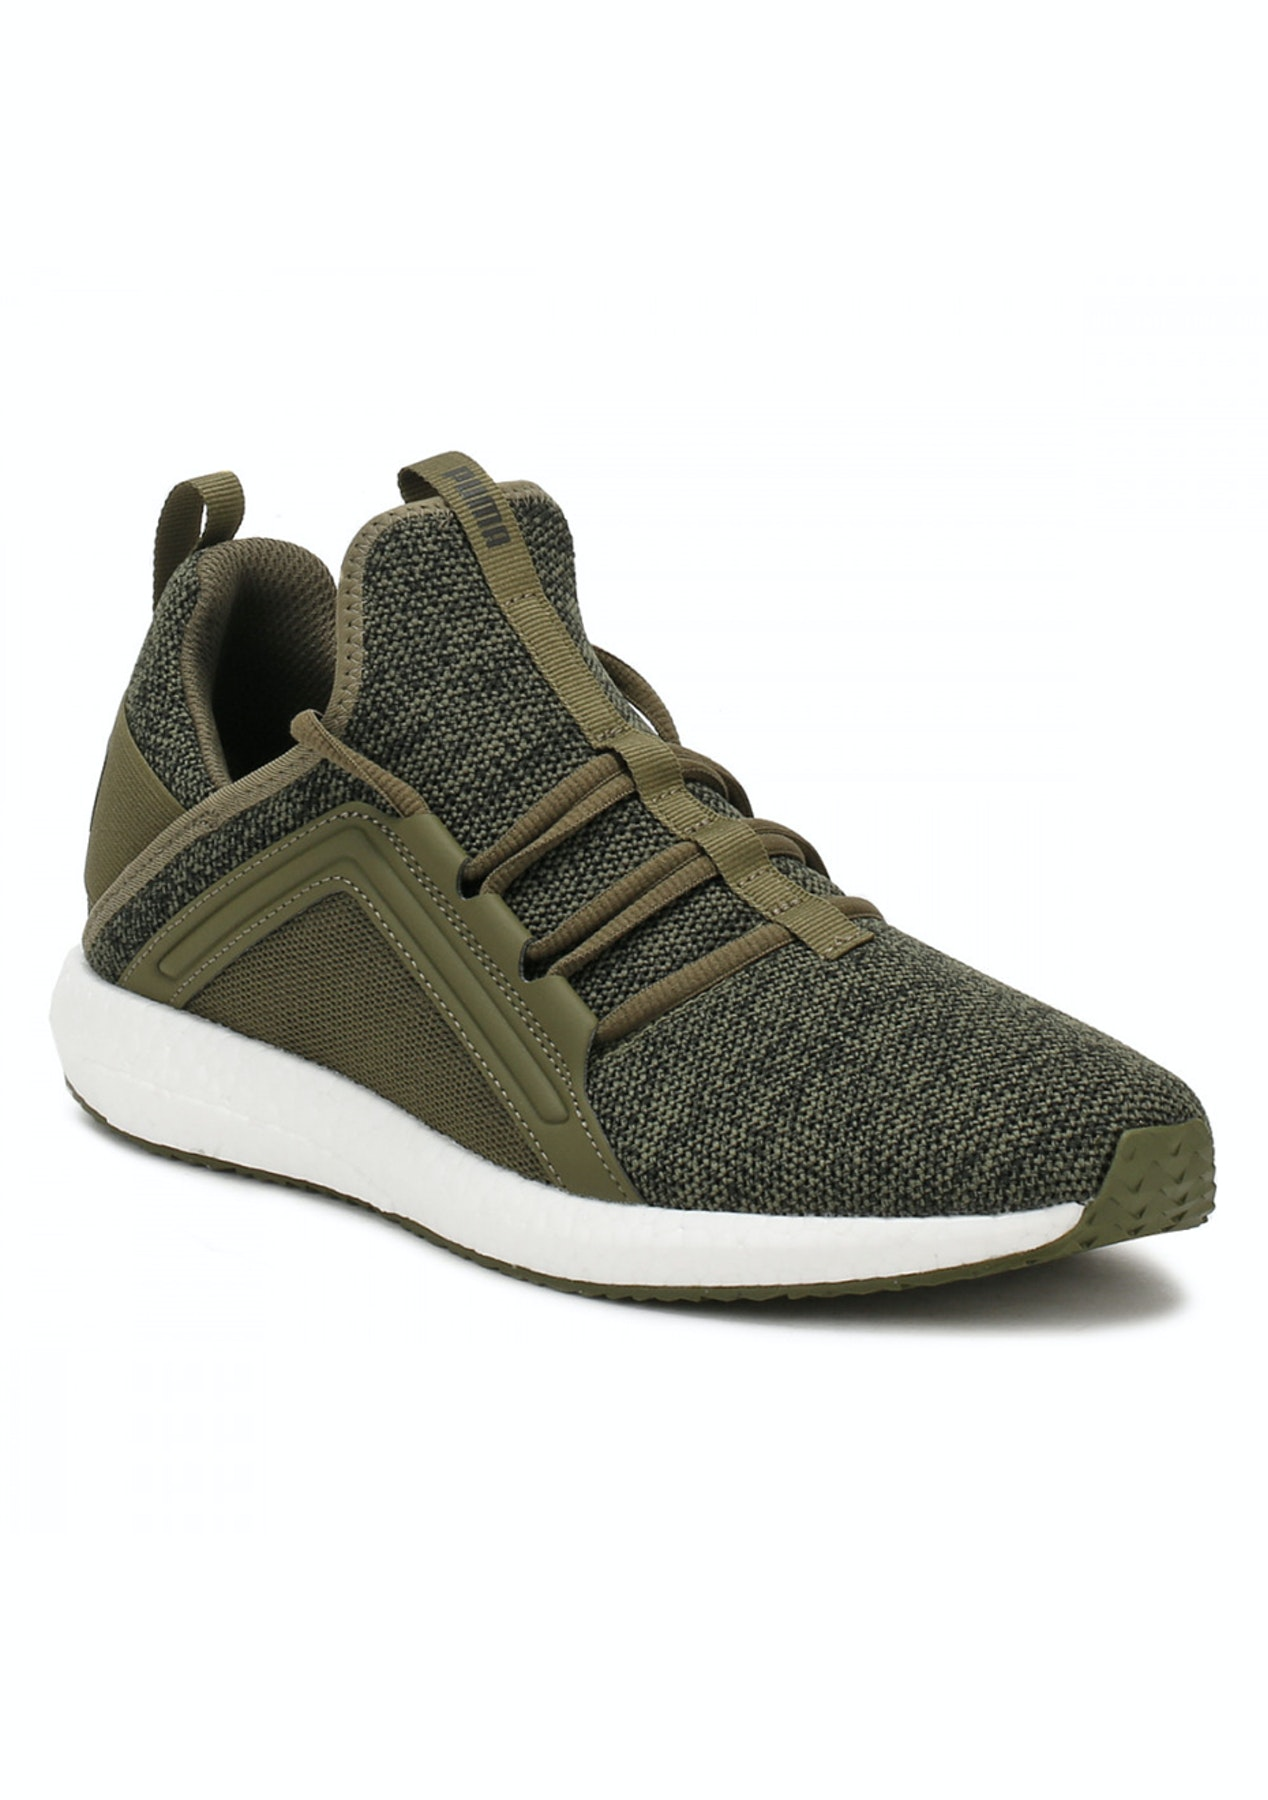 Puma Mens - Mega Nrgy Knit Olive Night - Activewear Price Reductions -  Onceit f20301210